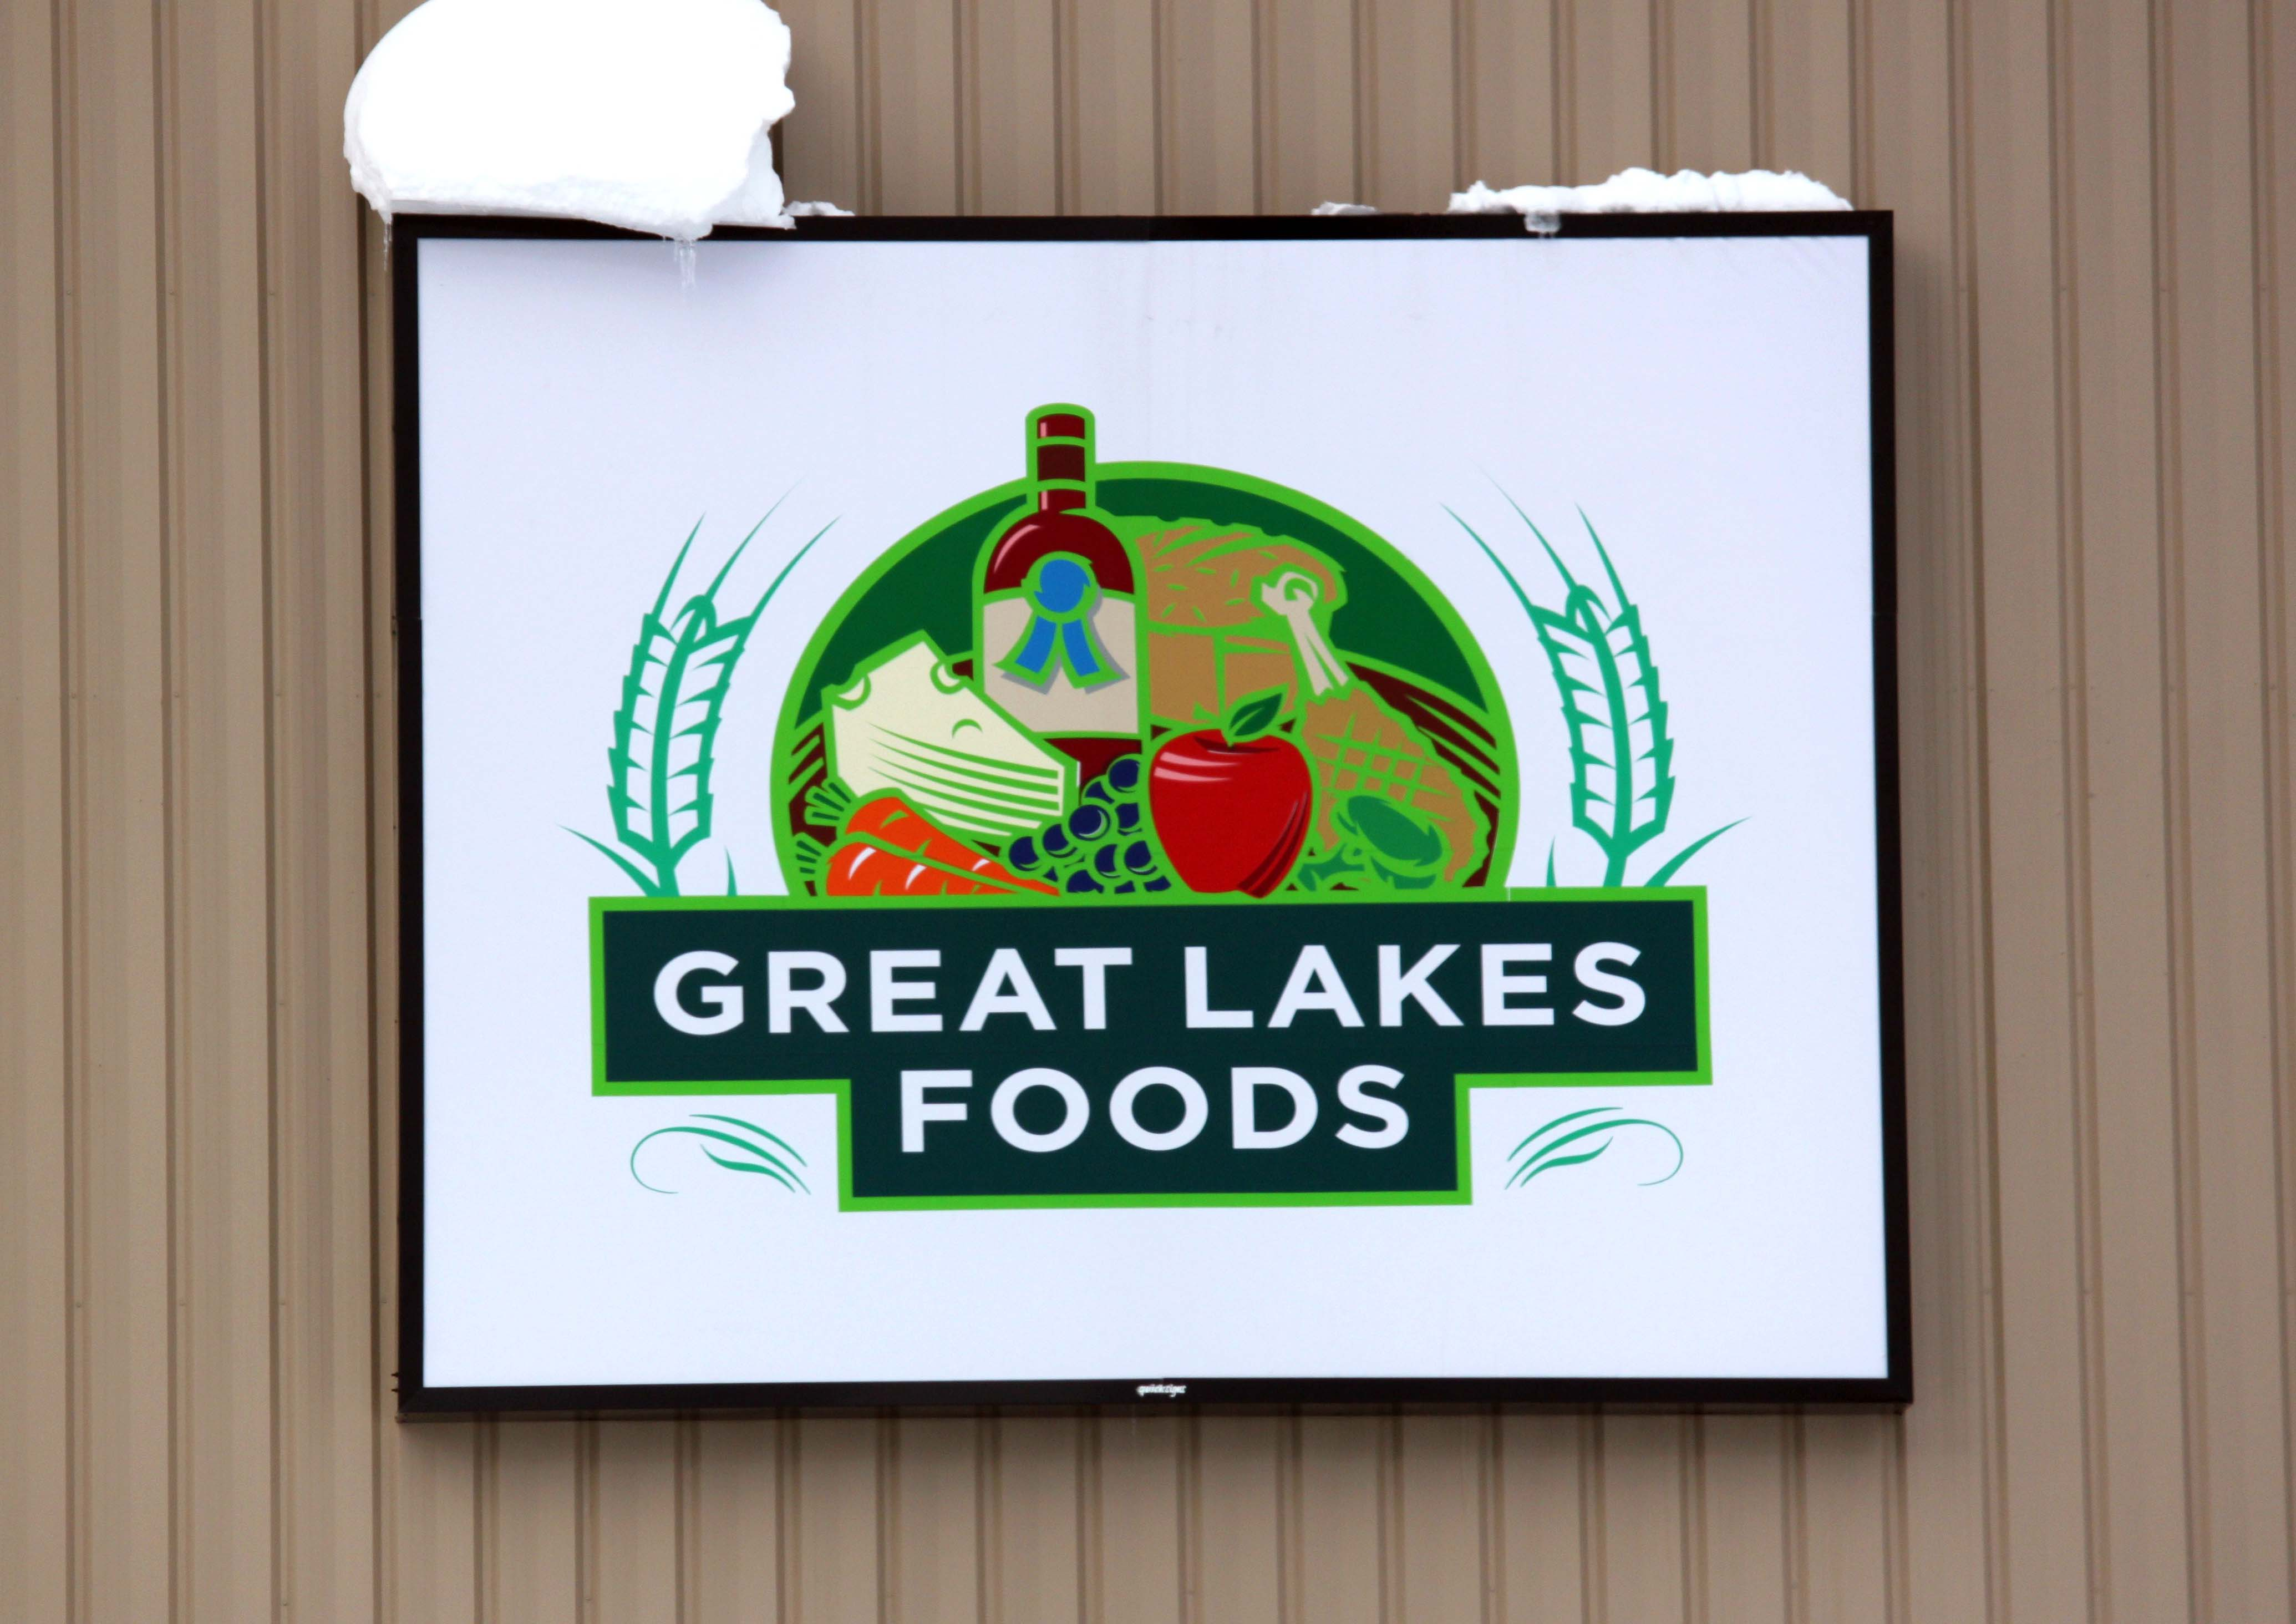 GREAT LAKES FOODS